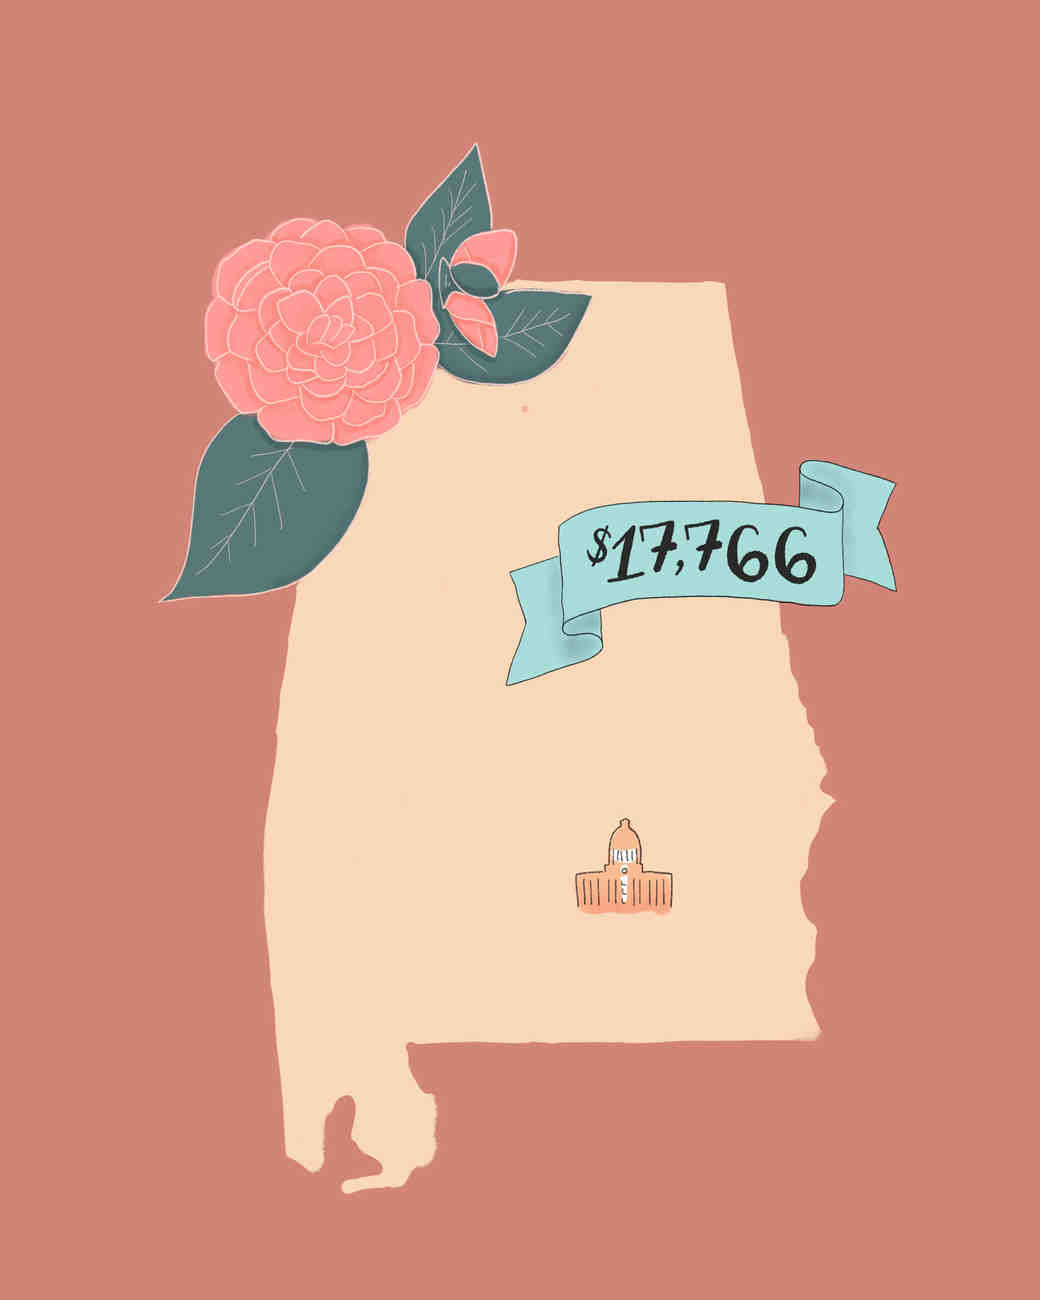 state wedding costs illustration alabama